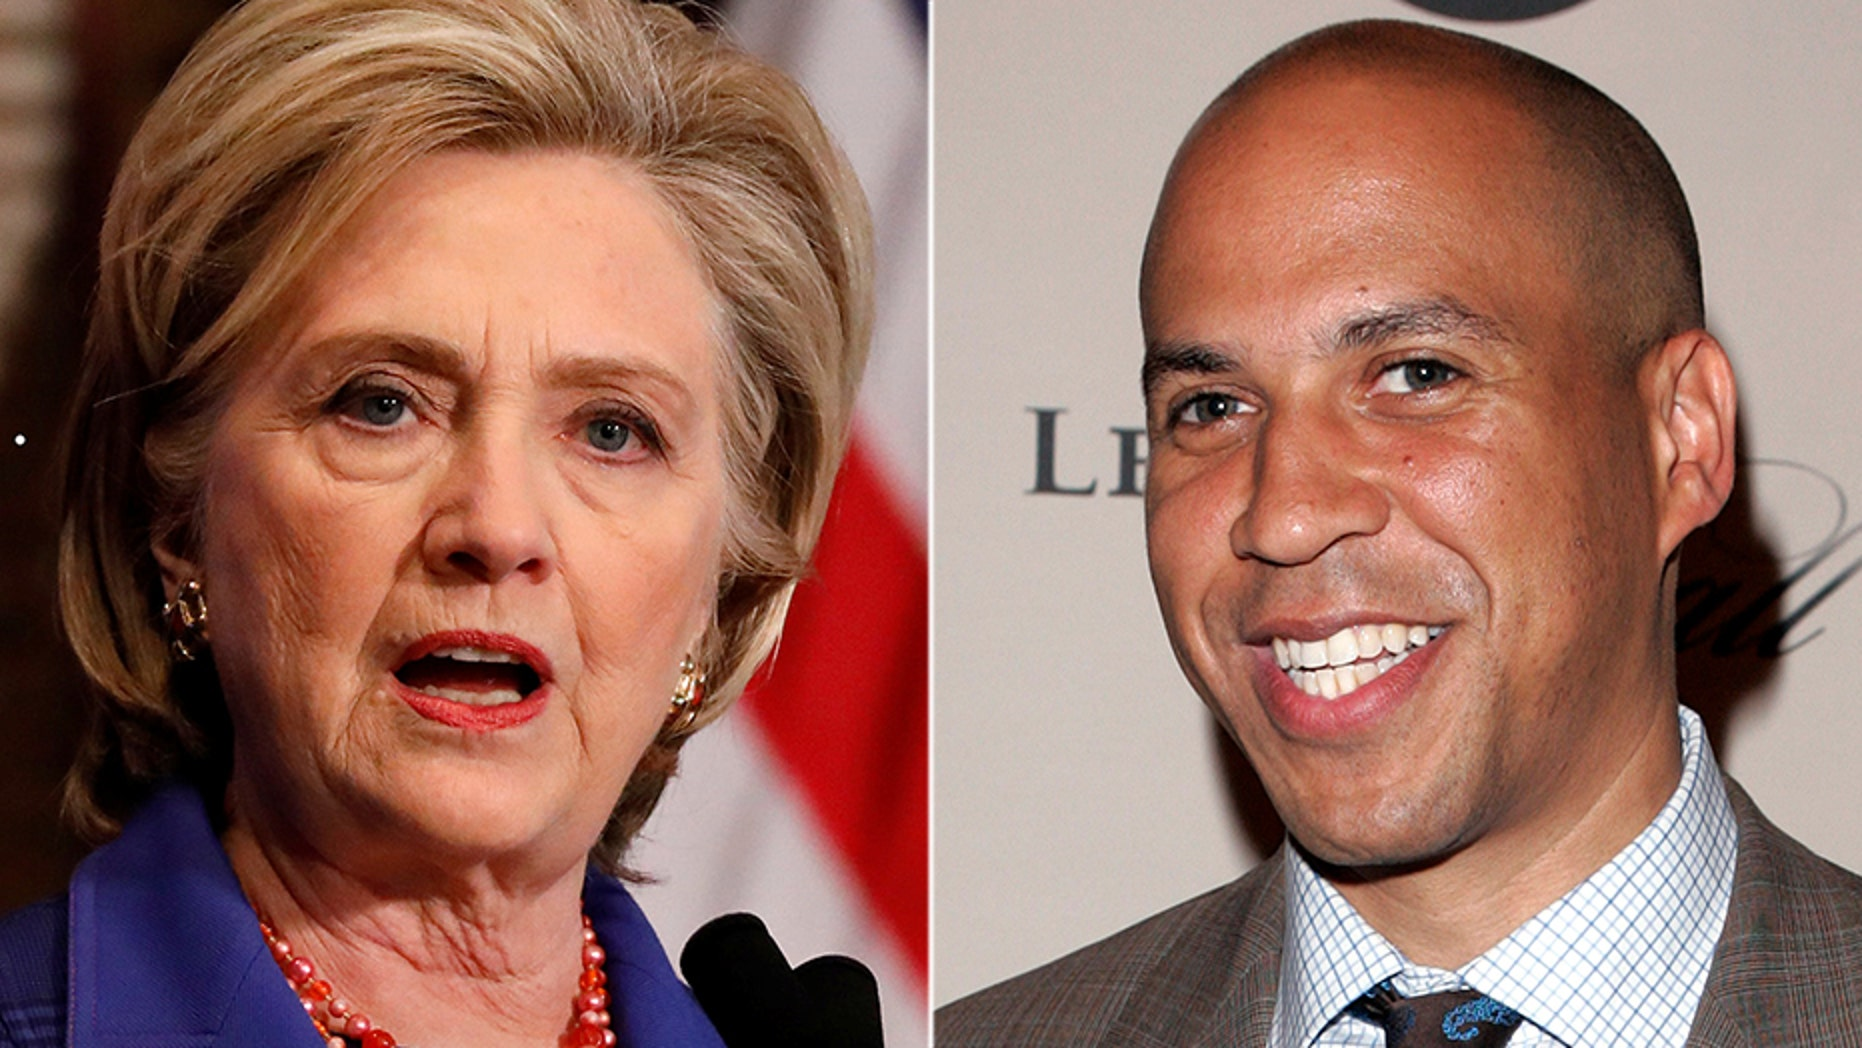 """Sen. Cory Booker didn't want to discuss Hillary Clinton's recent controversial comments during Monday's appearance on """"The View."""""""